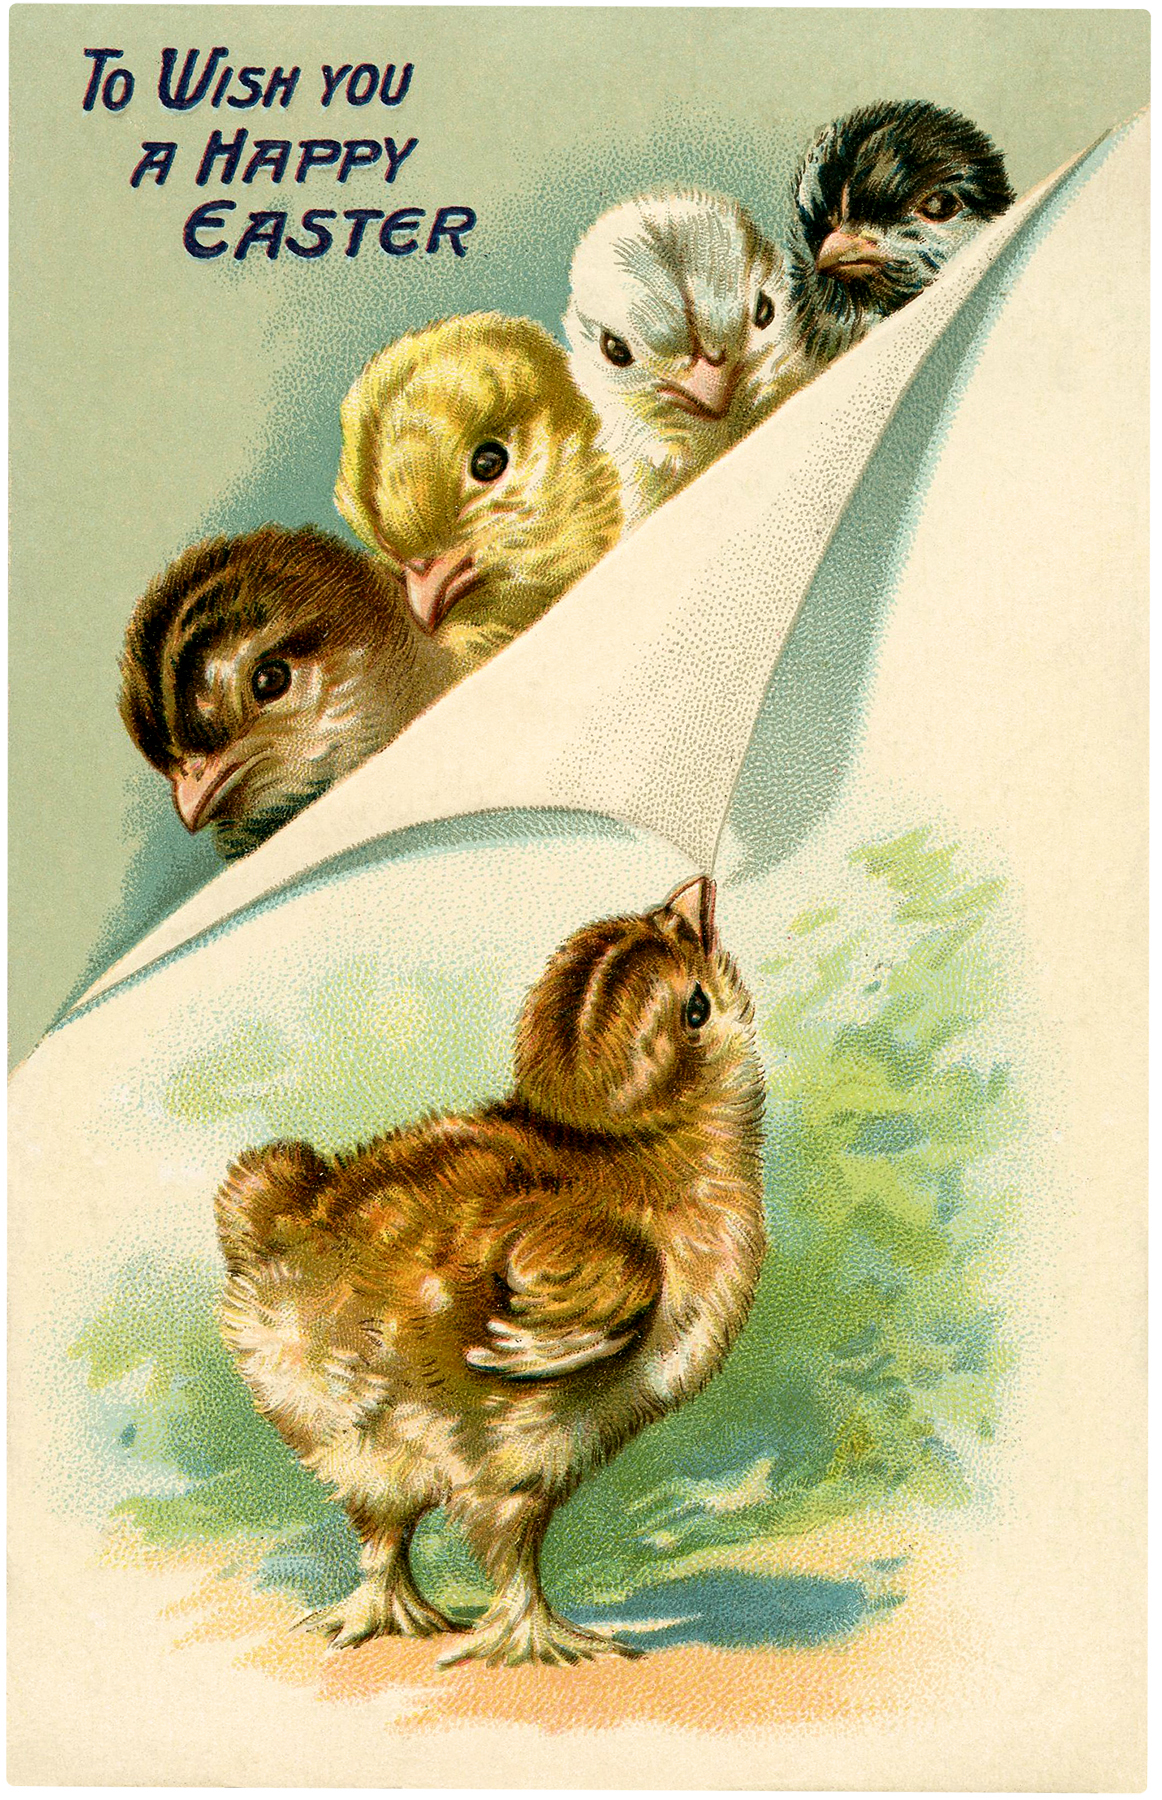 Cute Baby Chicks Image